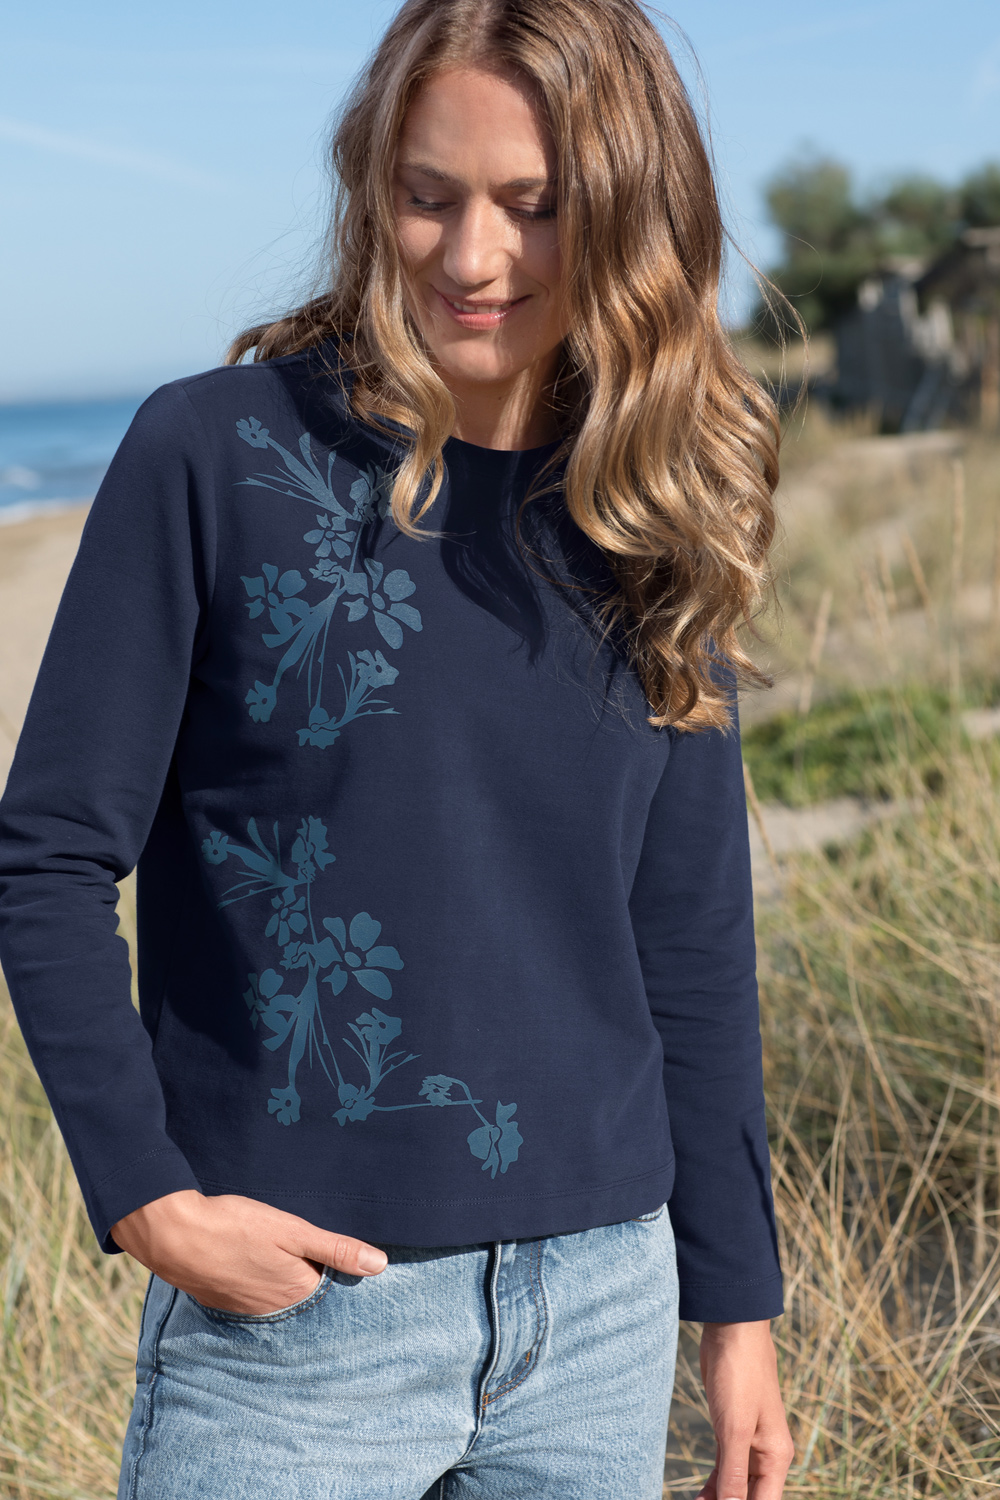 Sweater Blumen